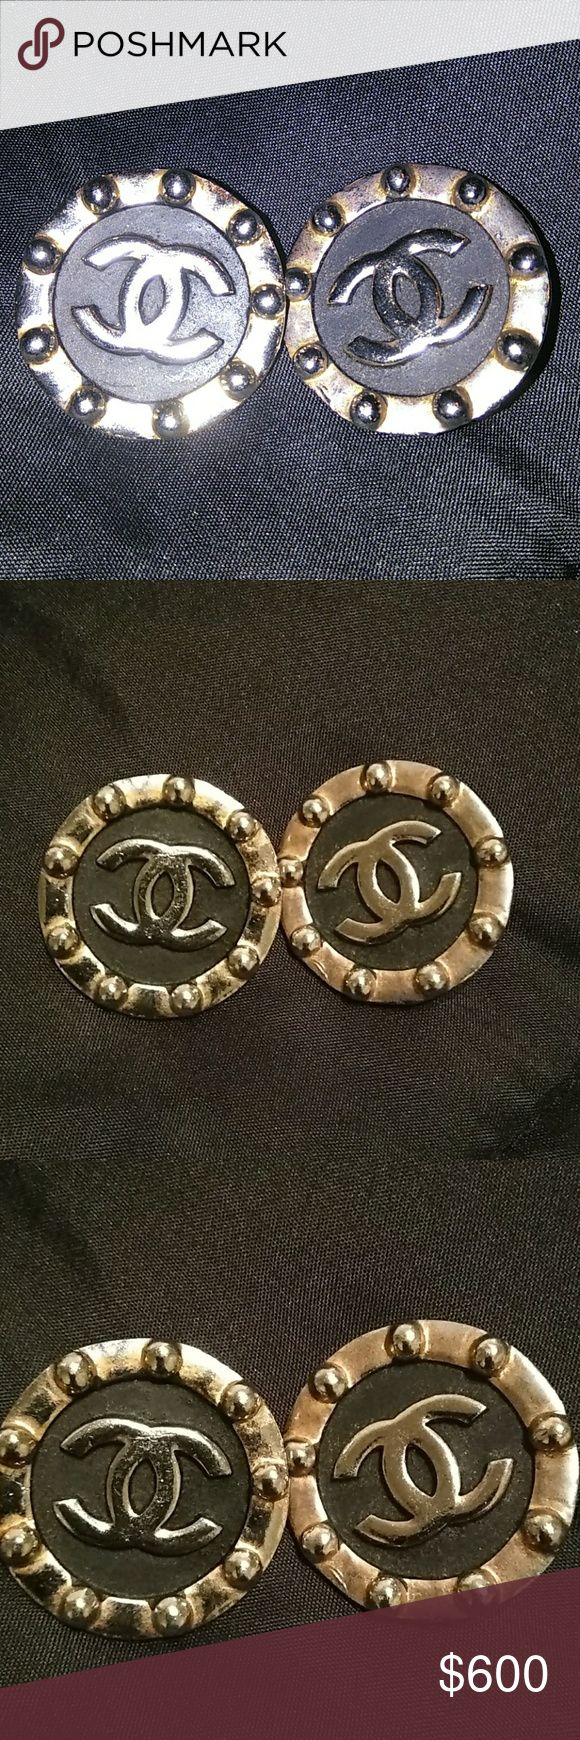 Spotted while shopping on Poshmark: Vintage Chanel earrings MAKE AN OFFER! #poshmark #fashion #shopping #style #CHANEL #Accessories